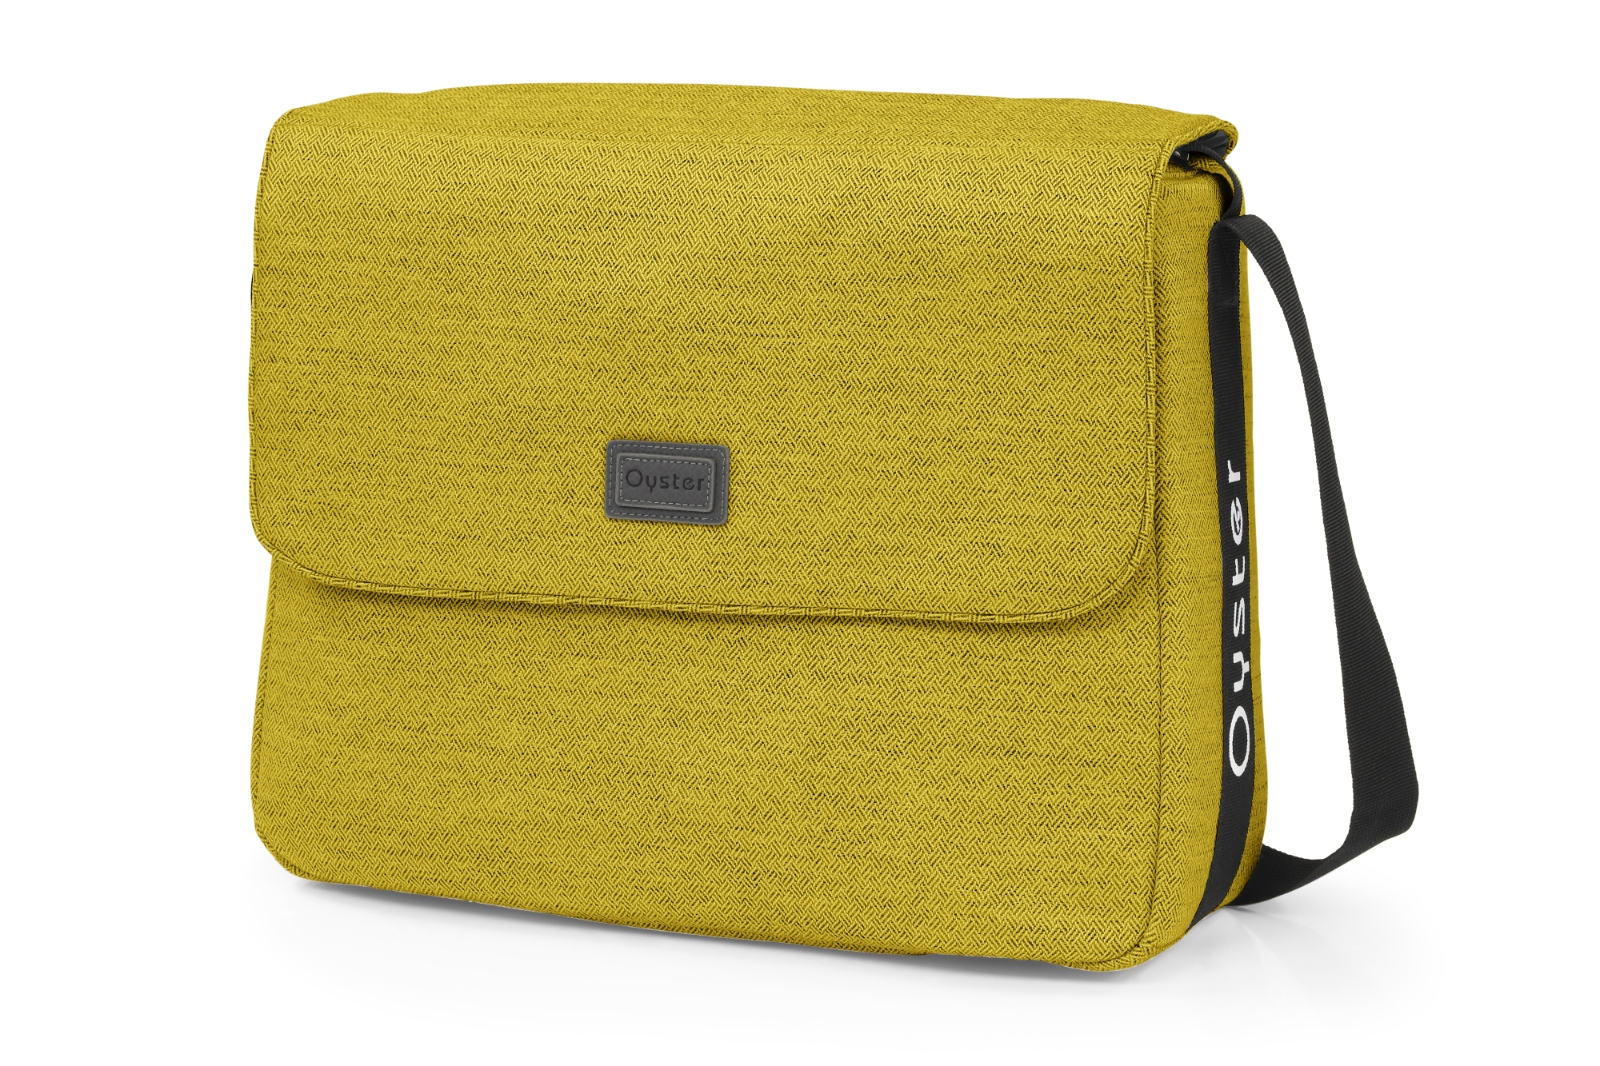 Babystyle Oyster 3 Changing Bag - Mustard